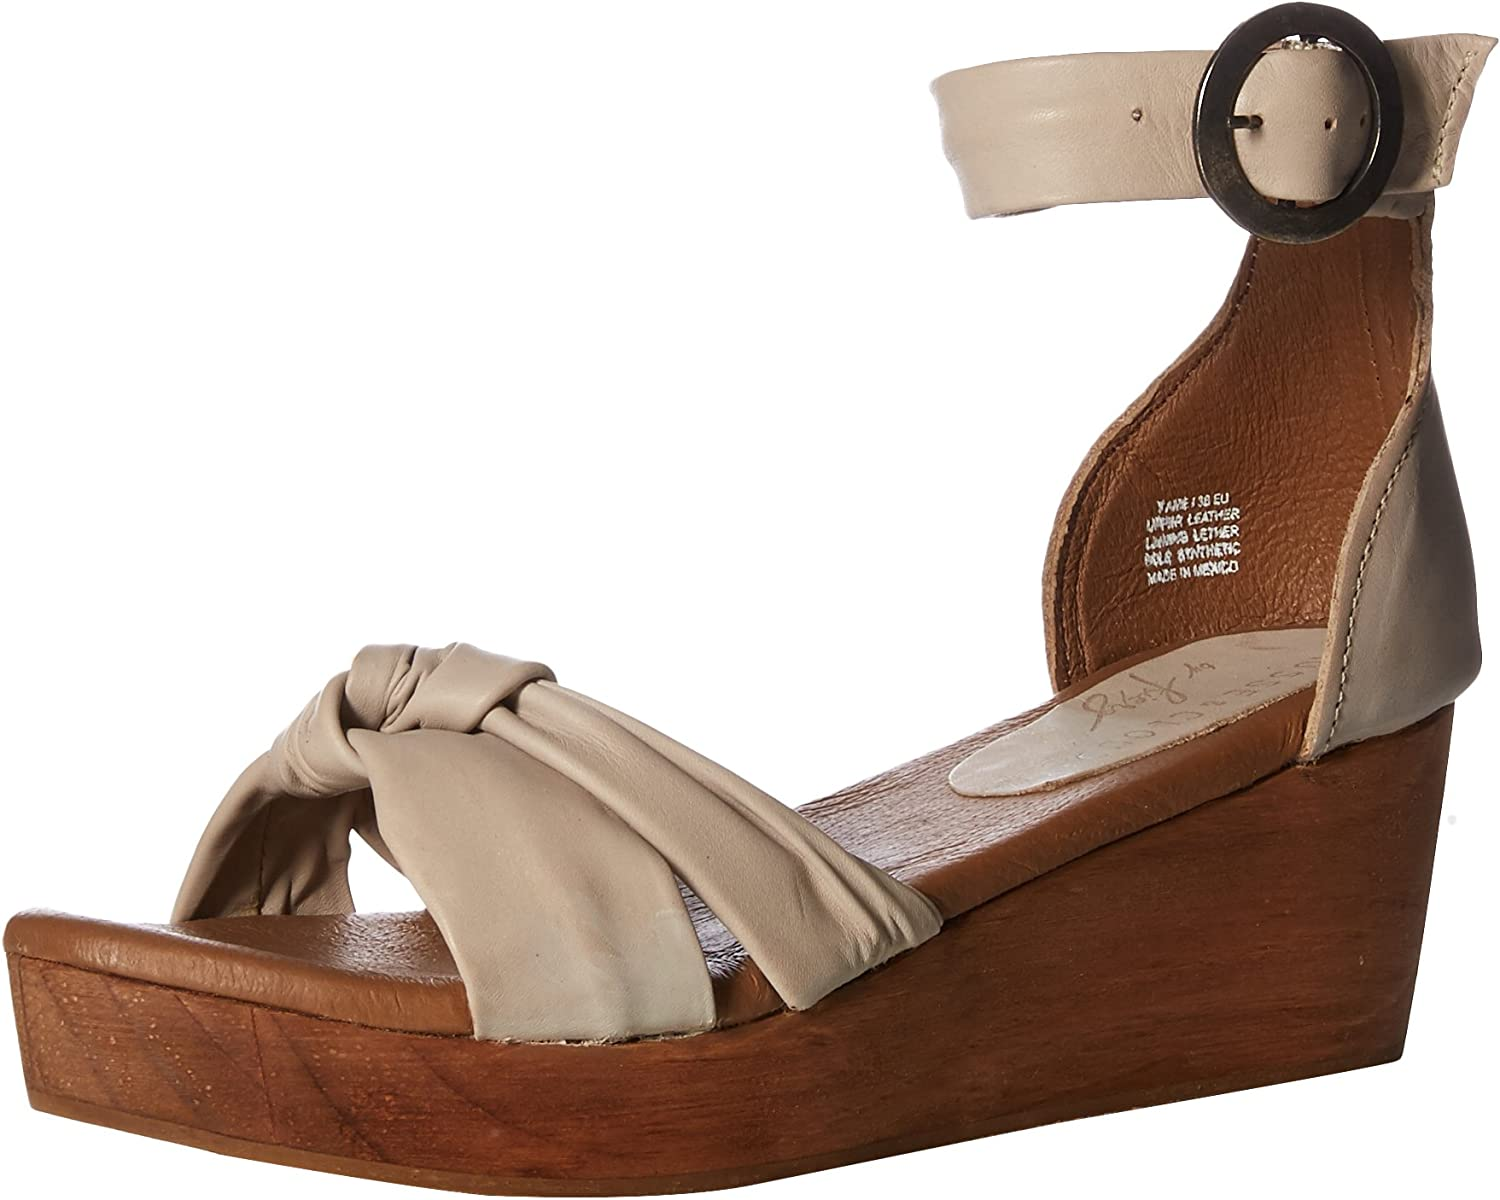 Musse & Cloud Frauen Platform Sandalen  | Authentische Garantie